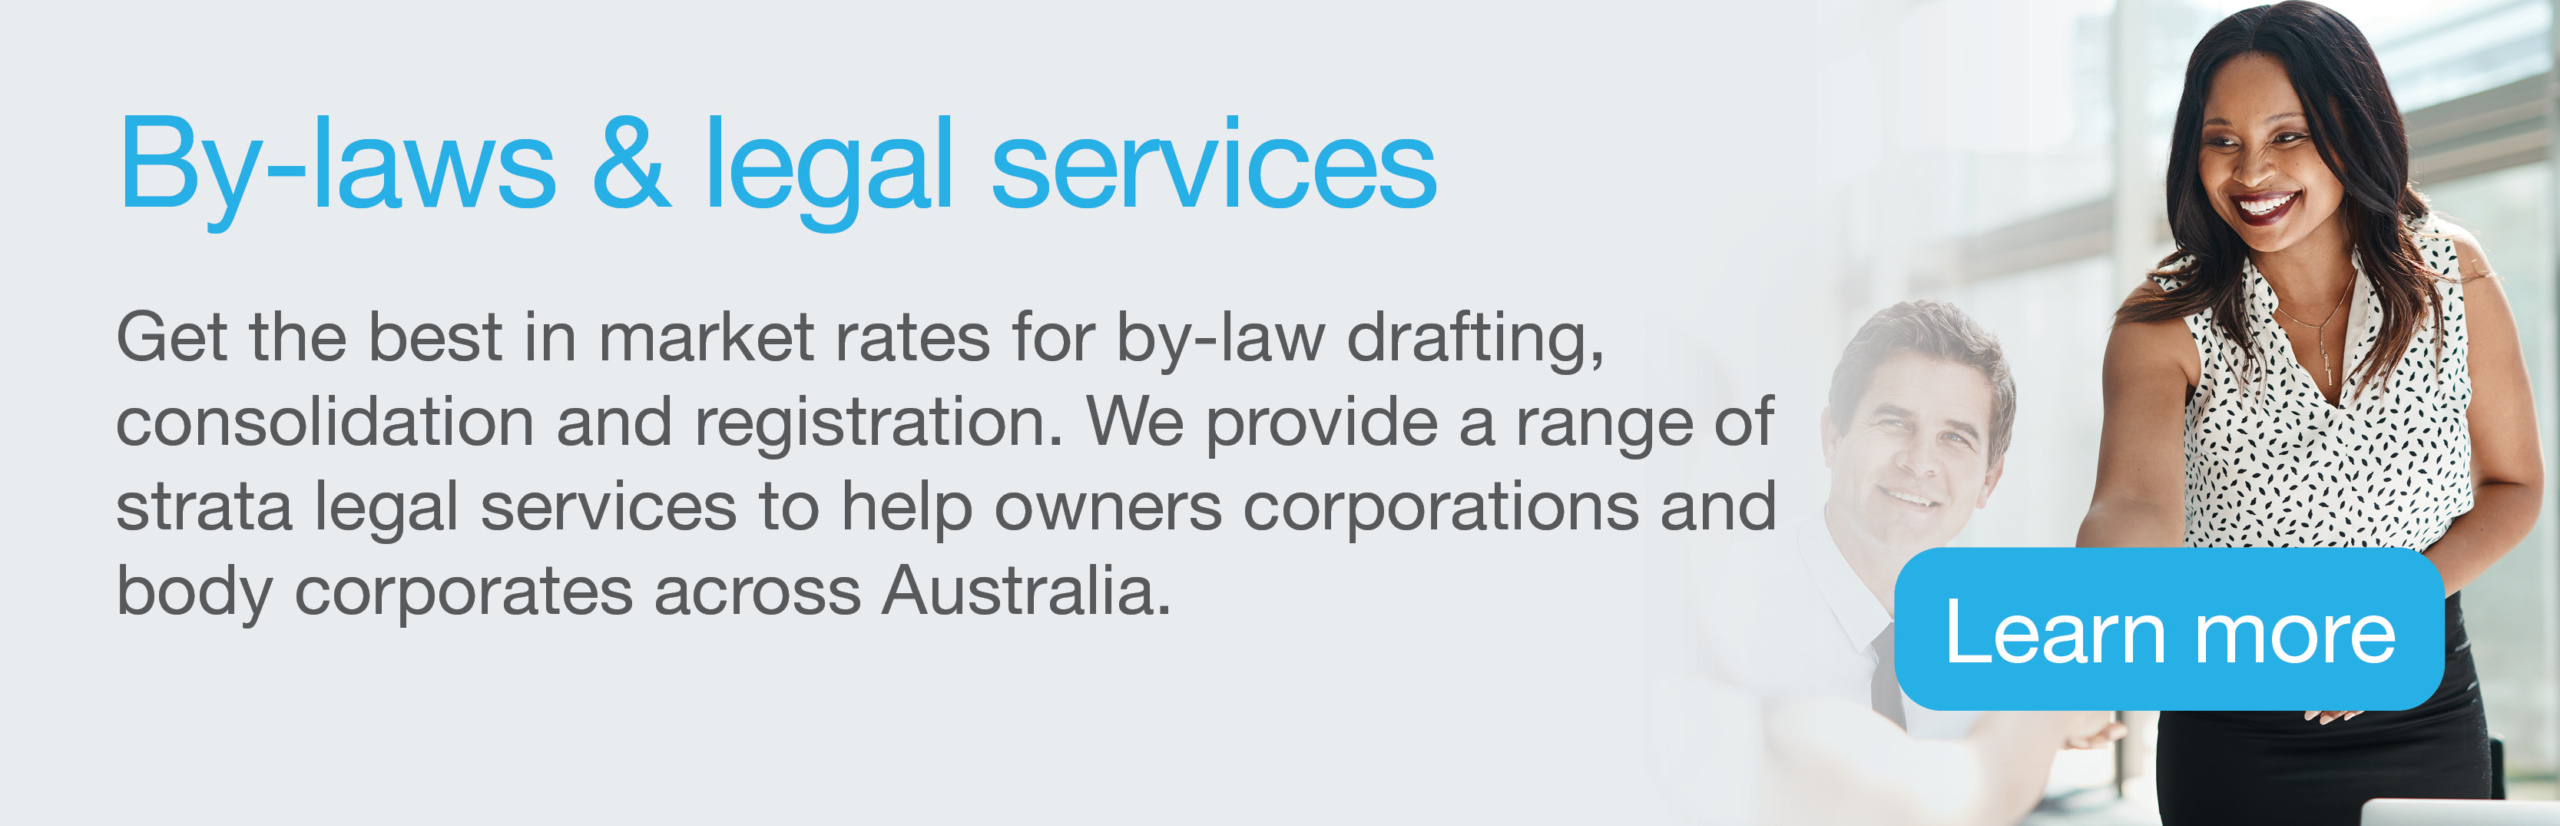 By-laws and legal services Kemps Petersons Legal